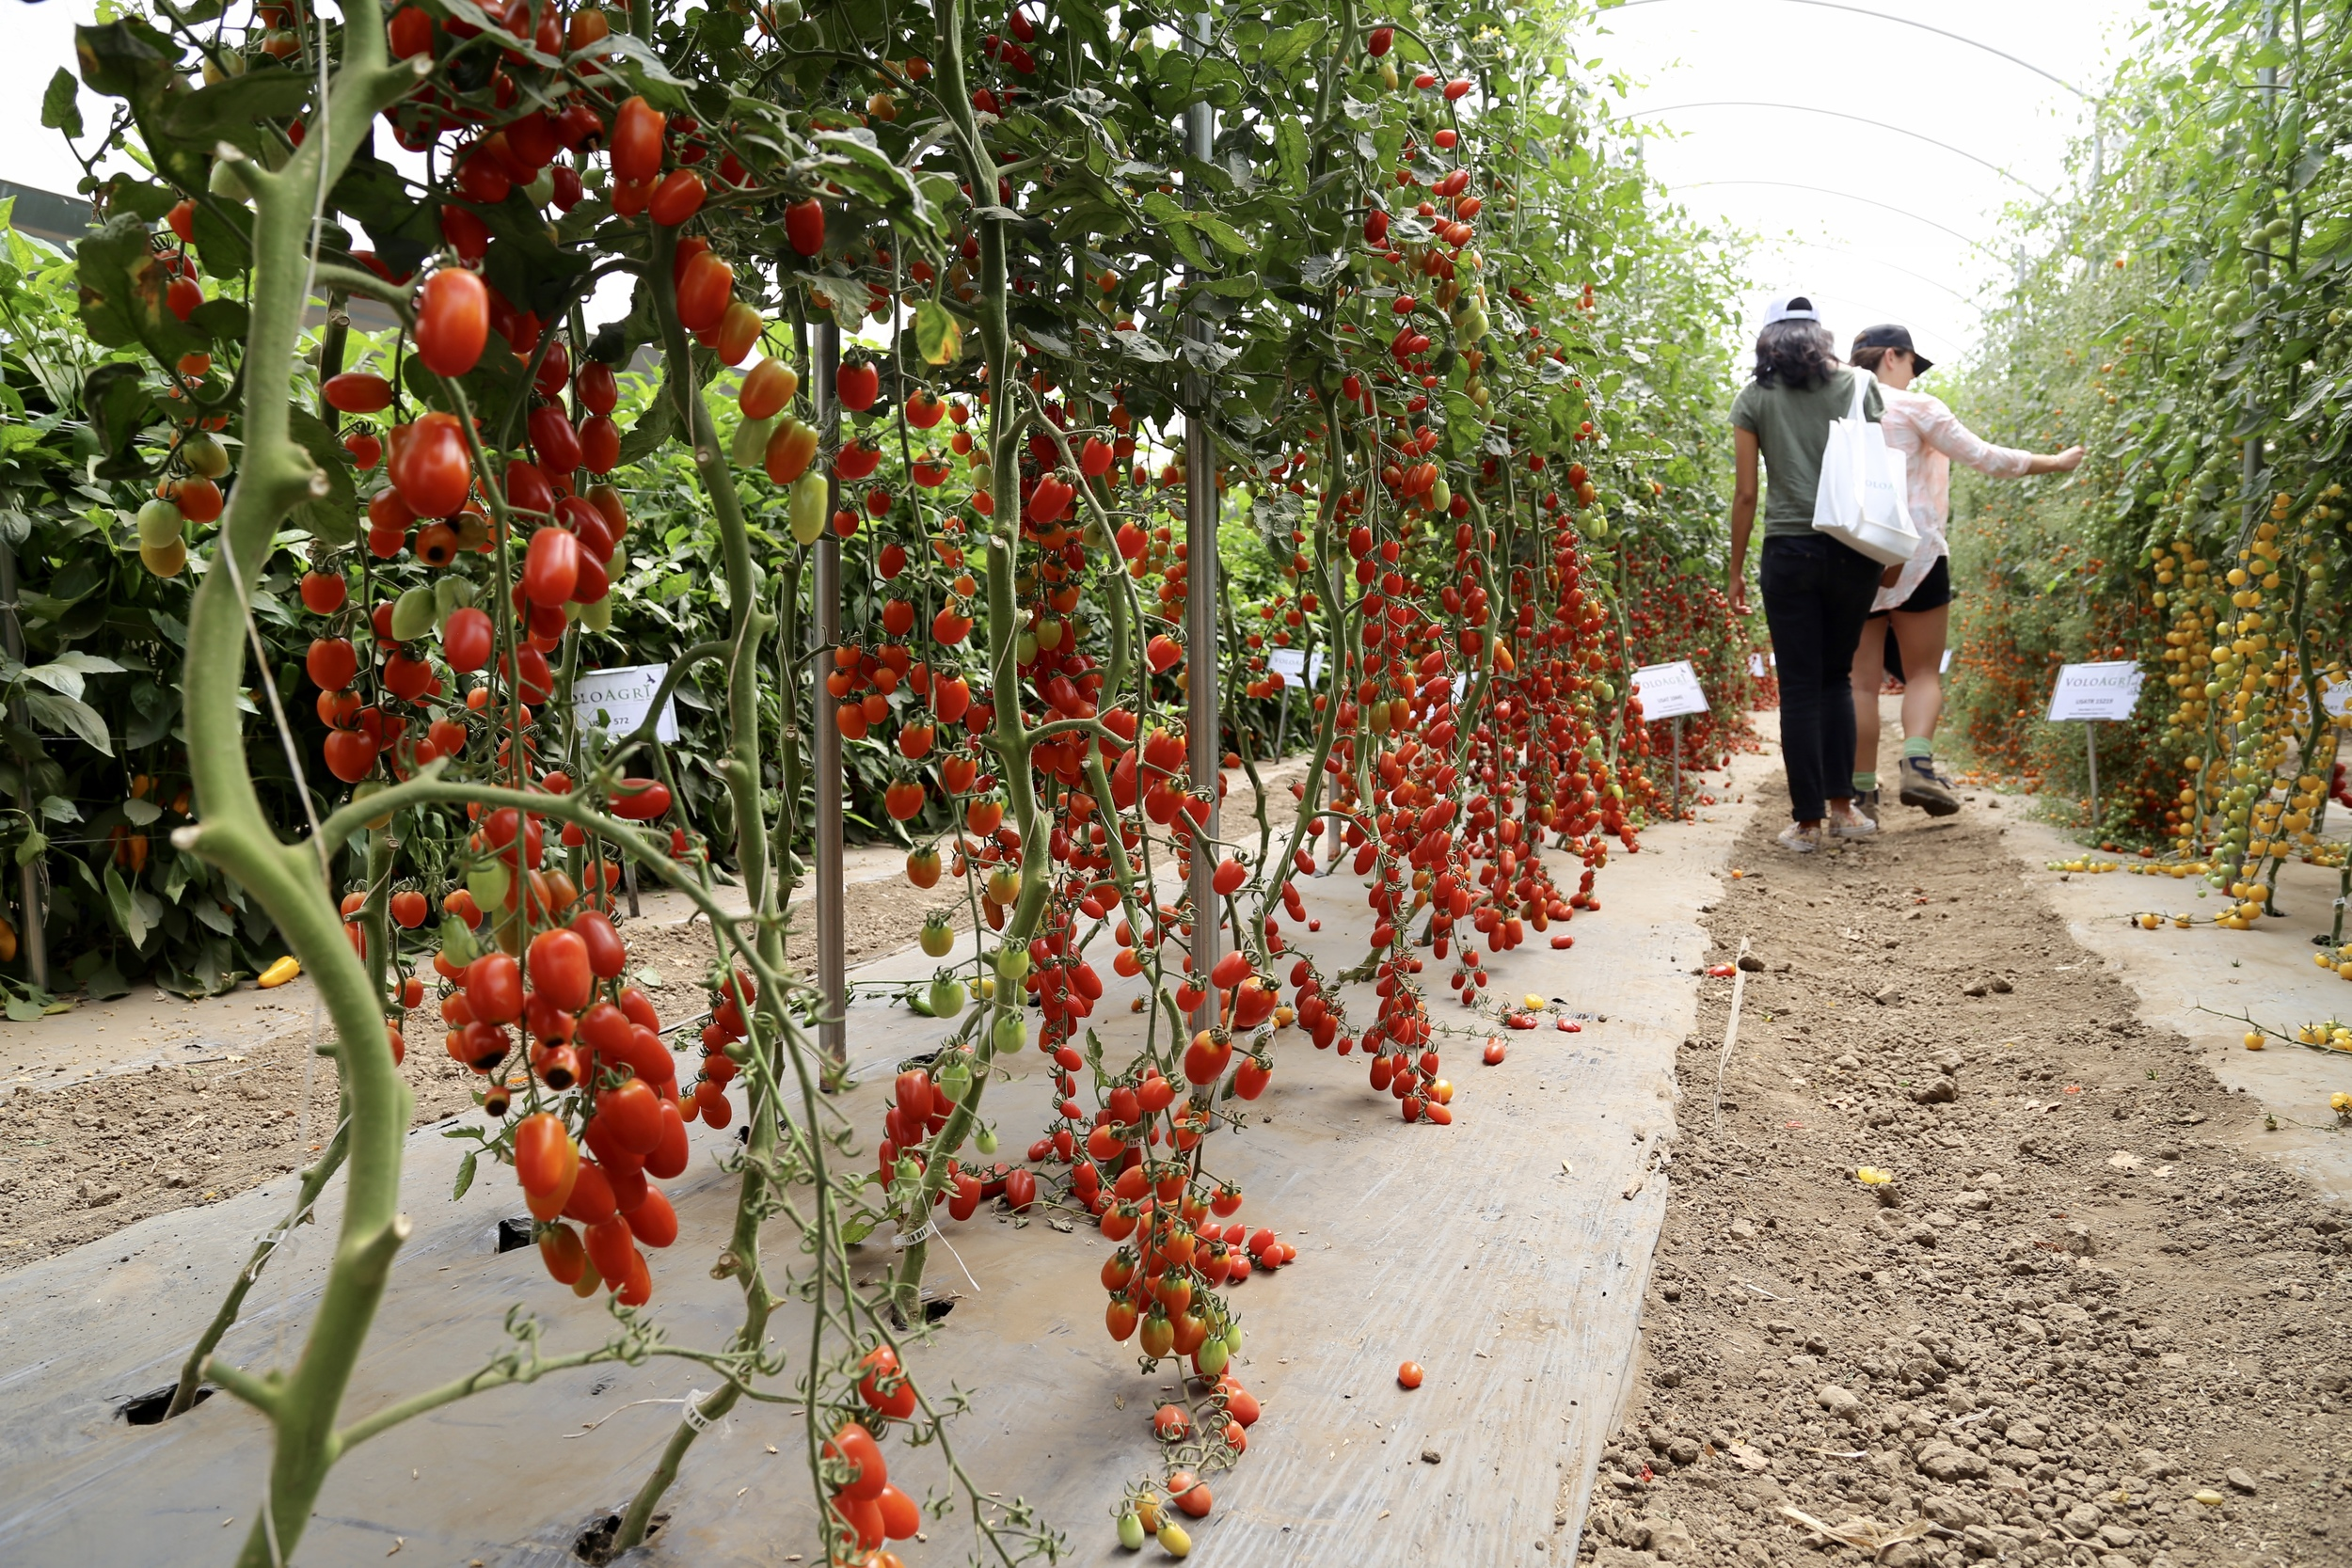 The team visits VoloAgri seed company field days, in the tomato hoop house